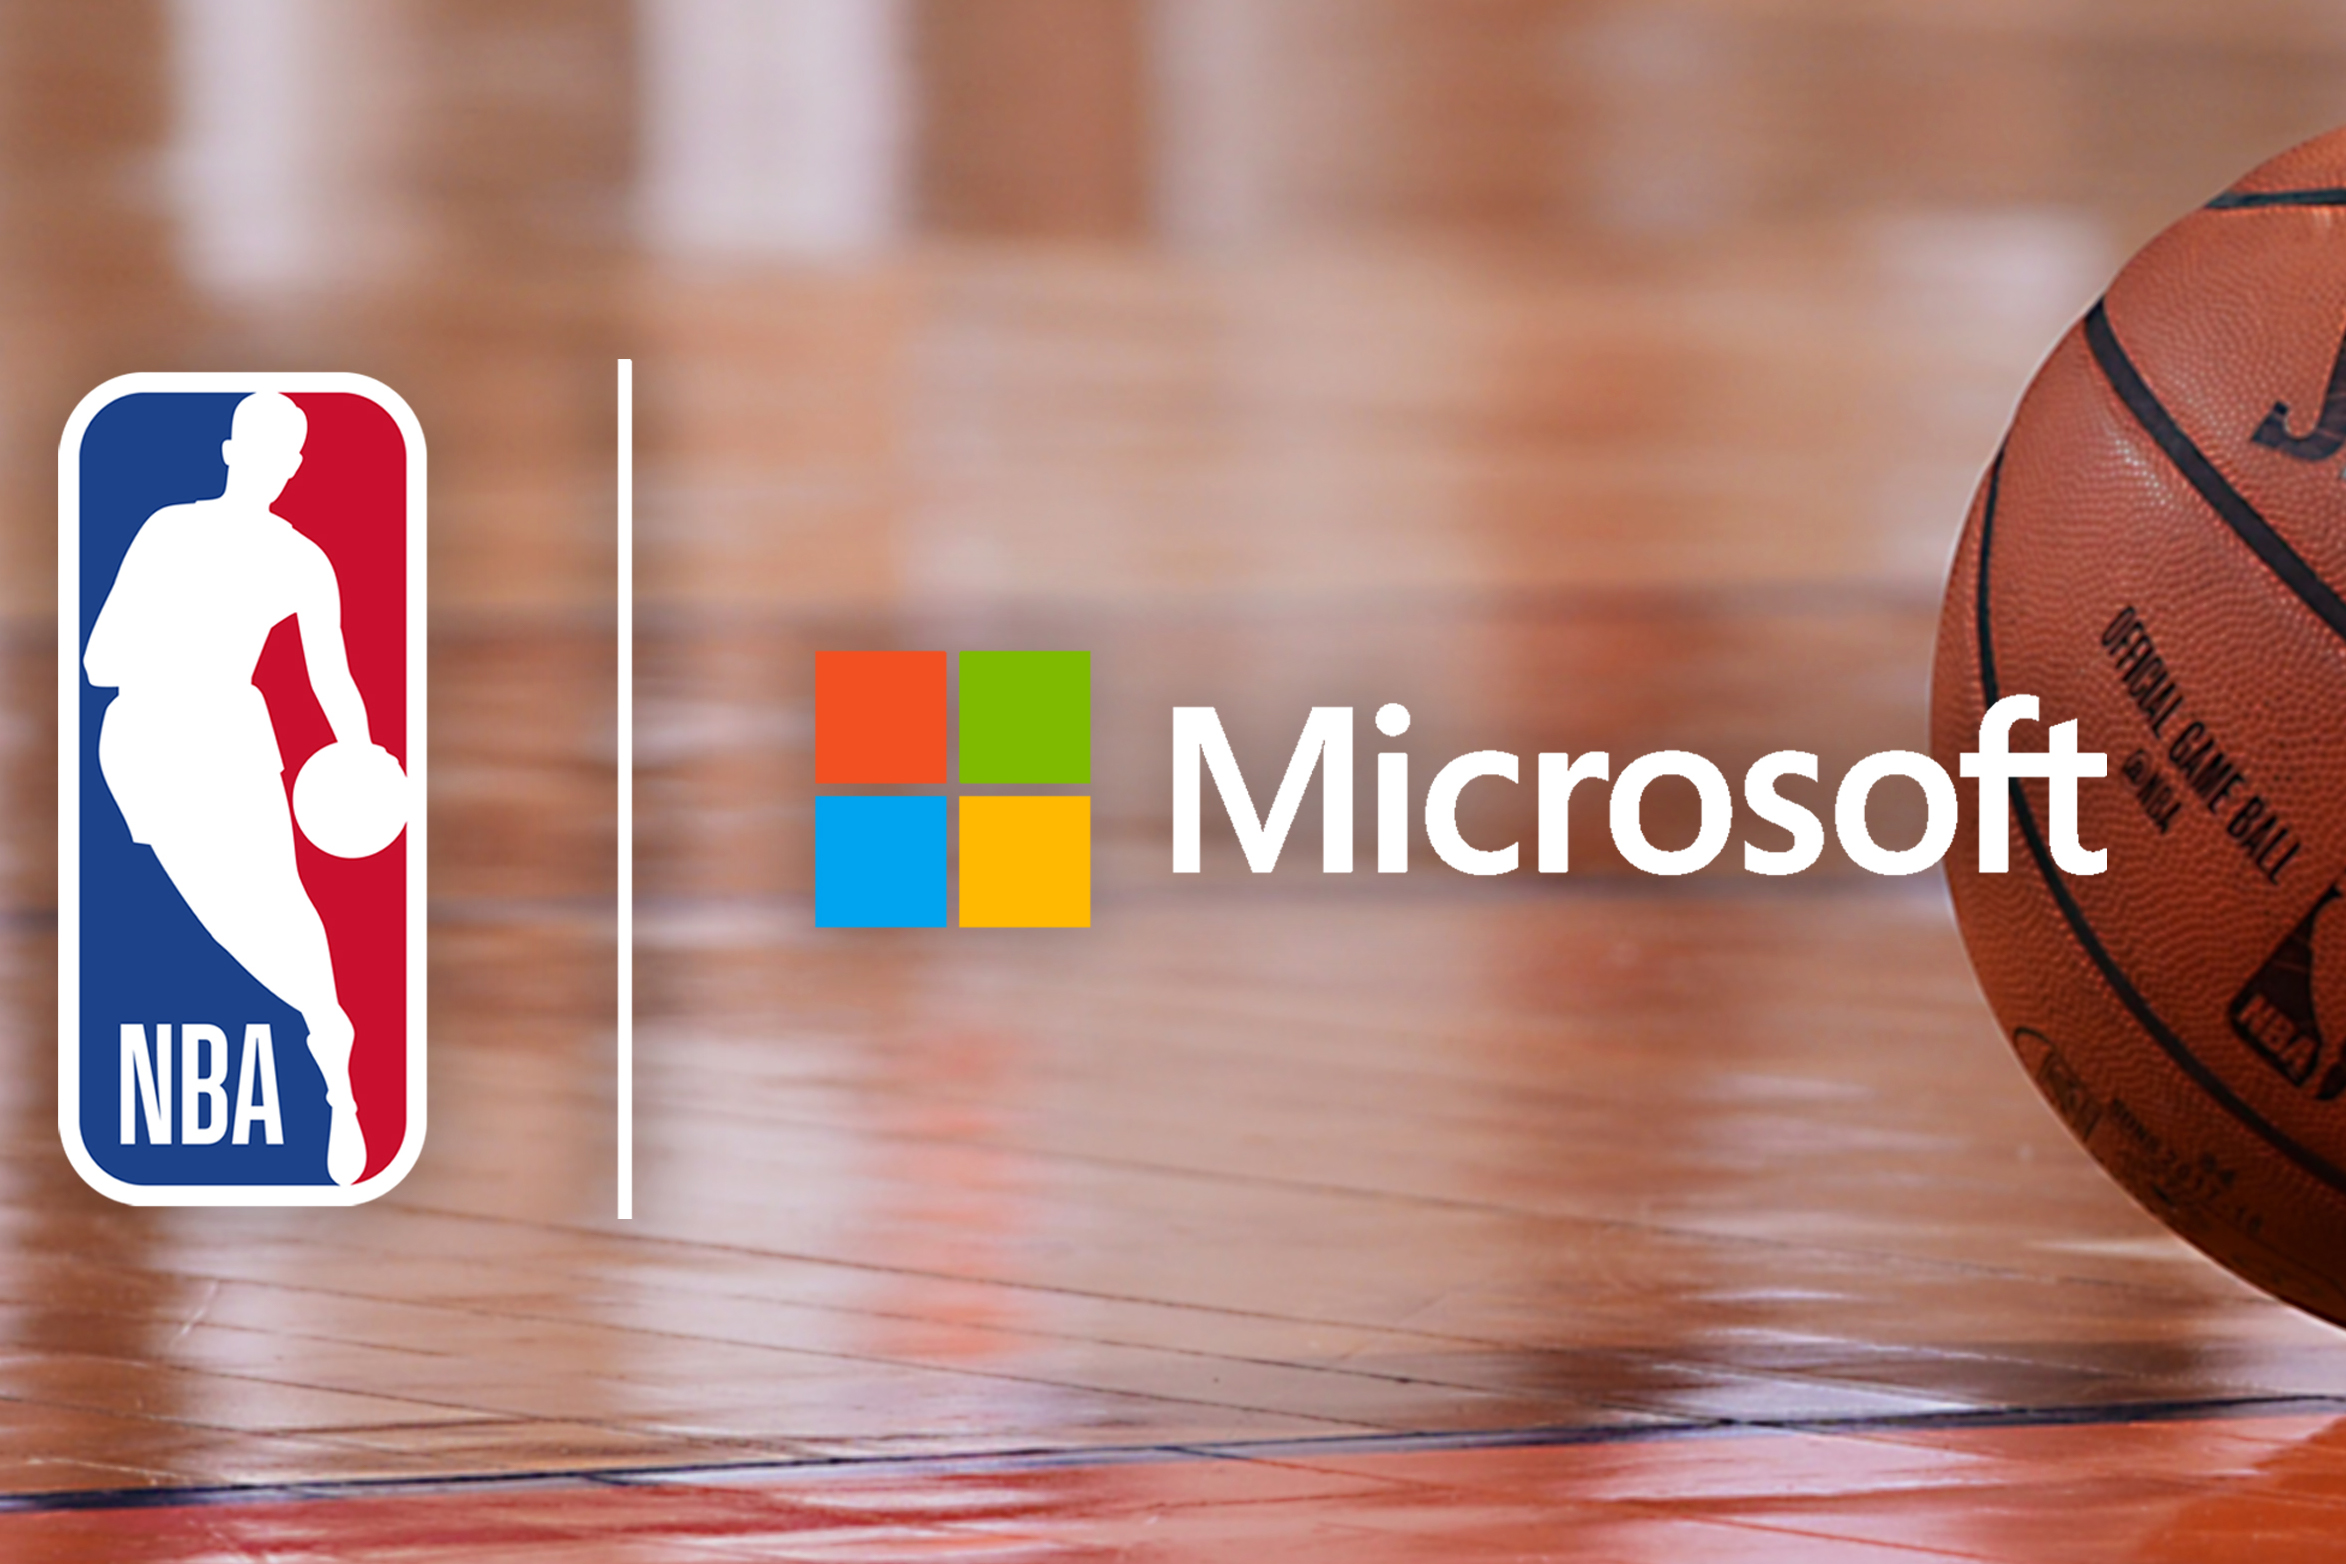 Microsoft joins NBA to personalize games for basketball fans